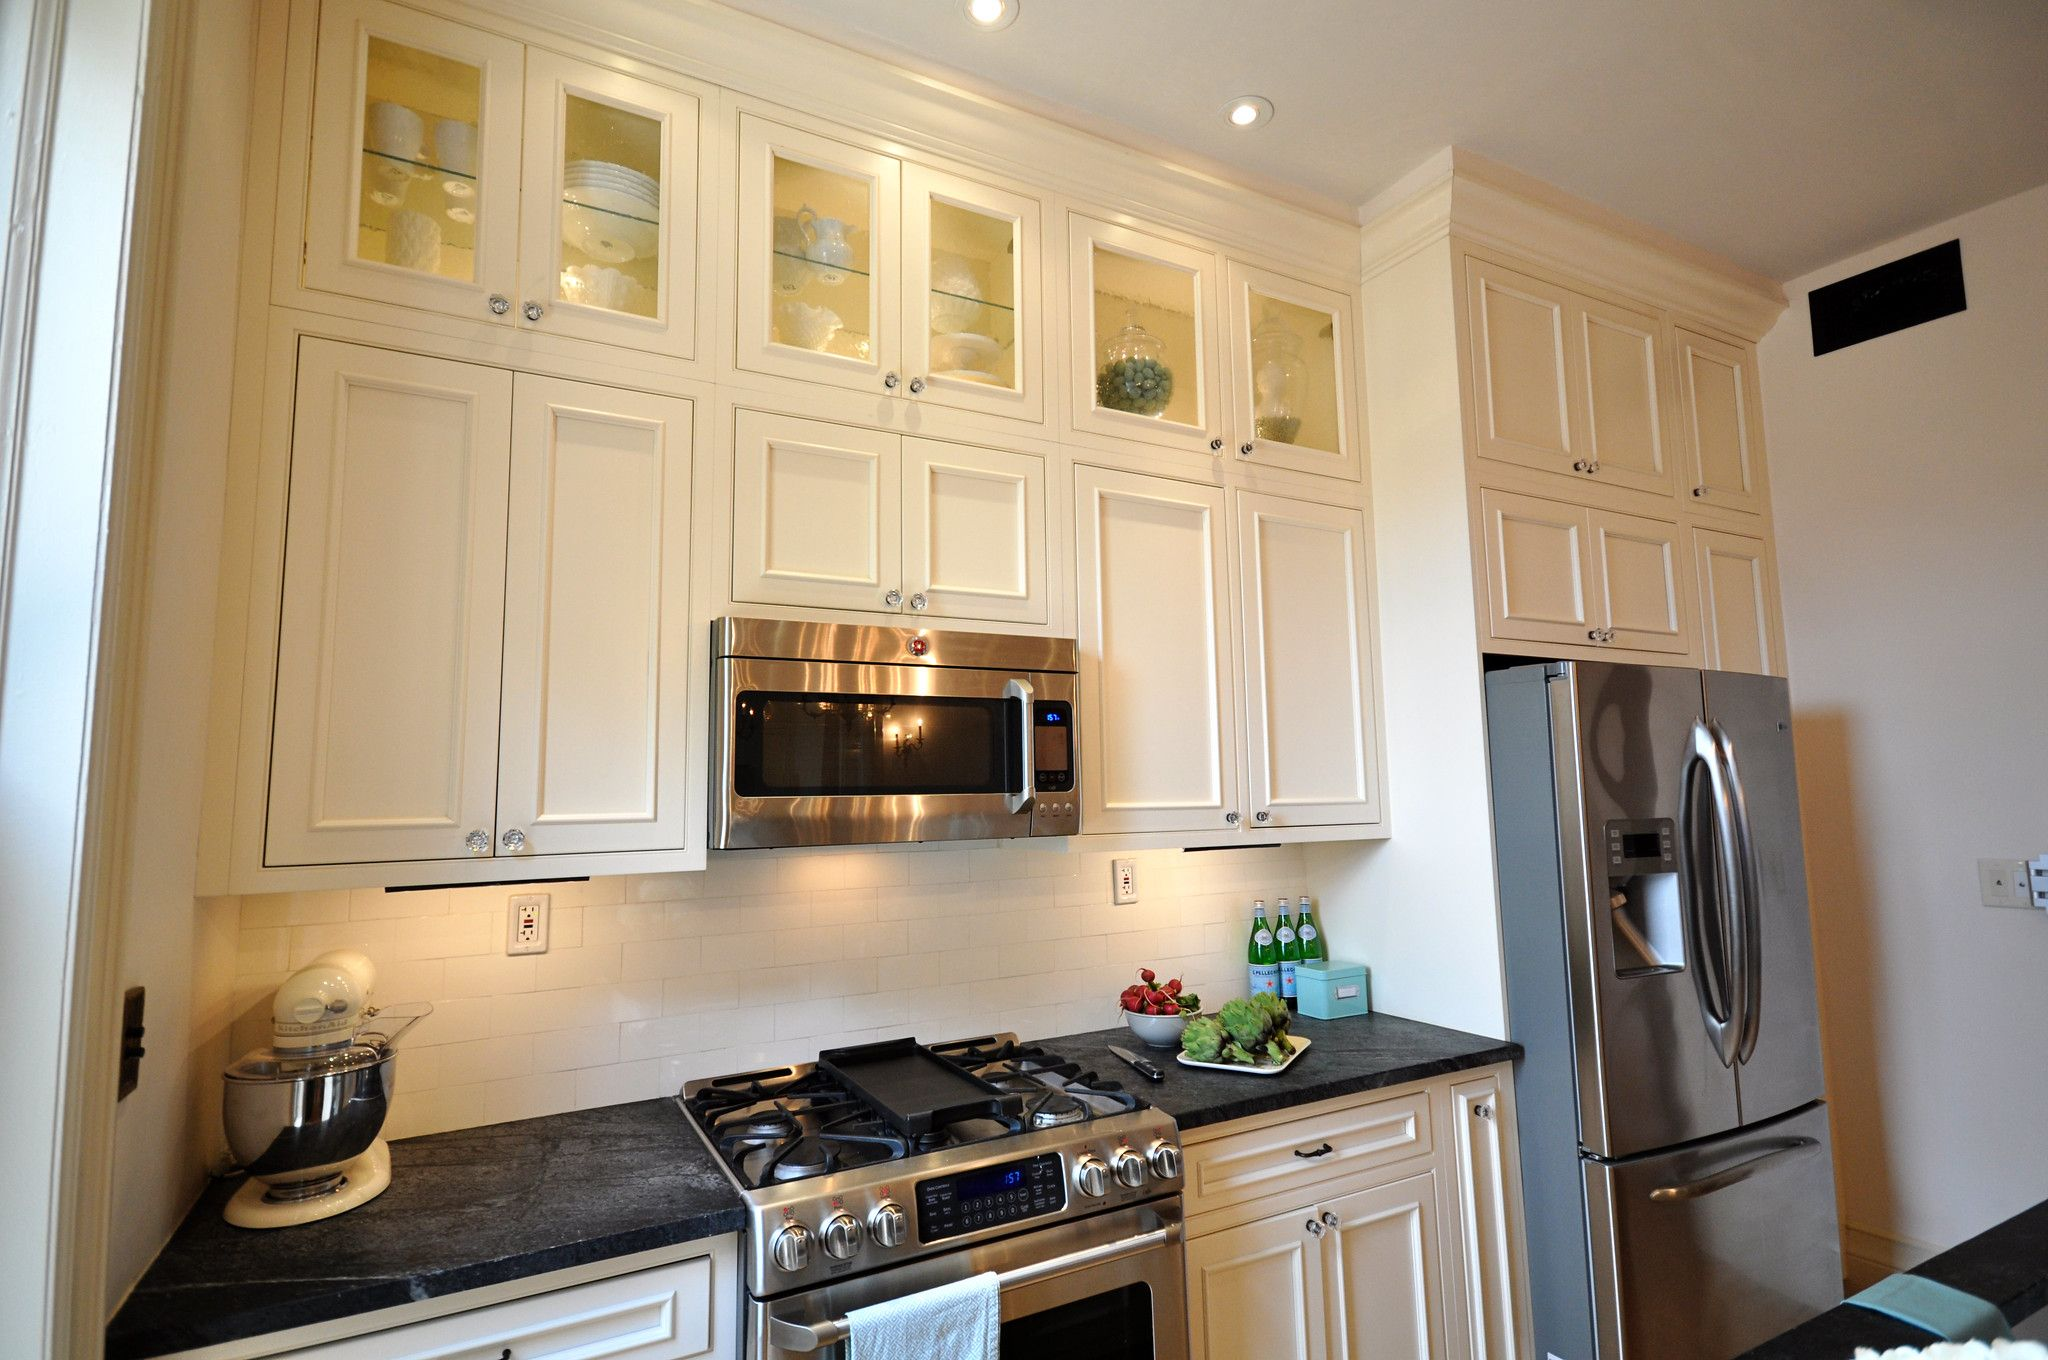 Cabinets All The Way Up In 2020 Tall Kitchen Cabinets Kitchen Inspirations Glass Kitchen Cabinets